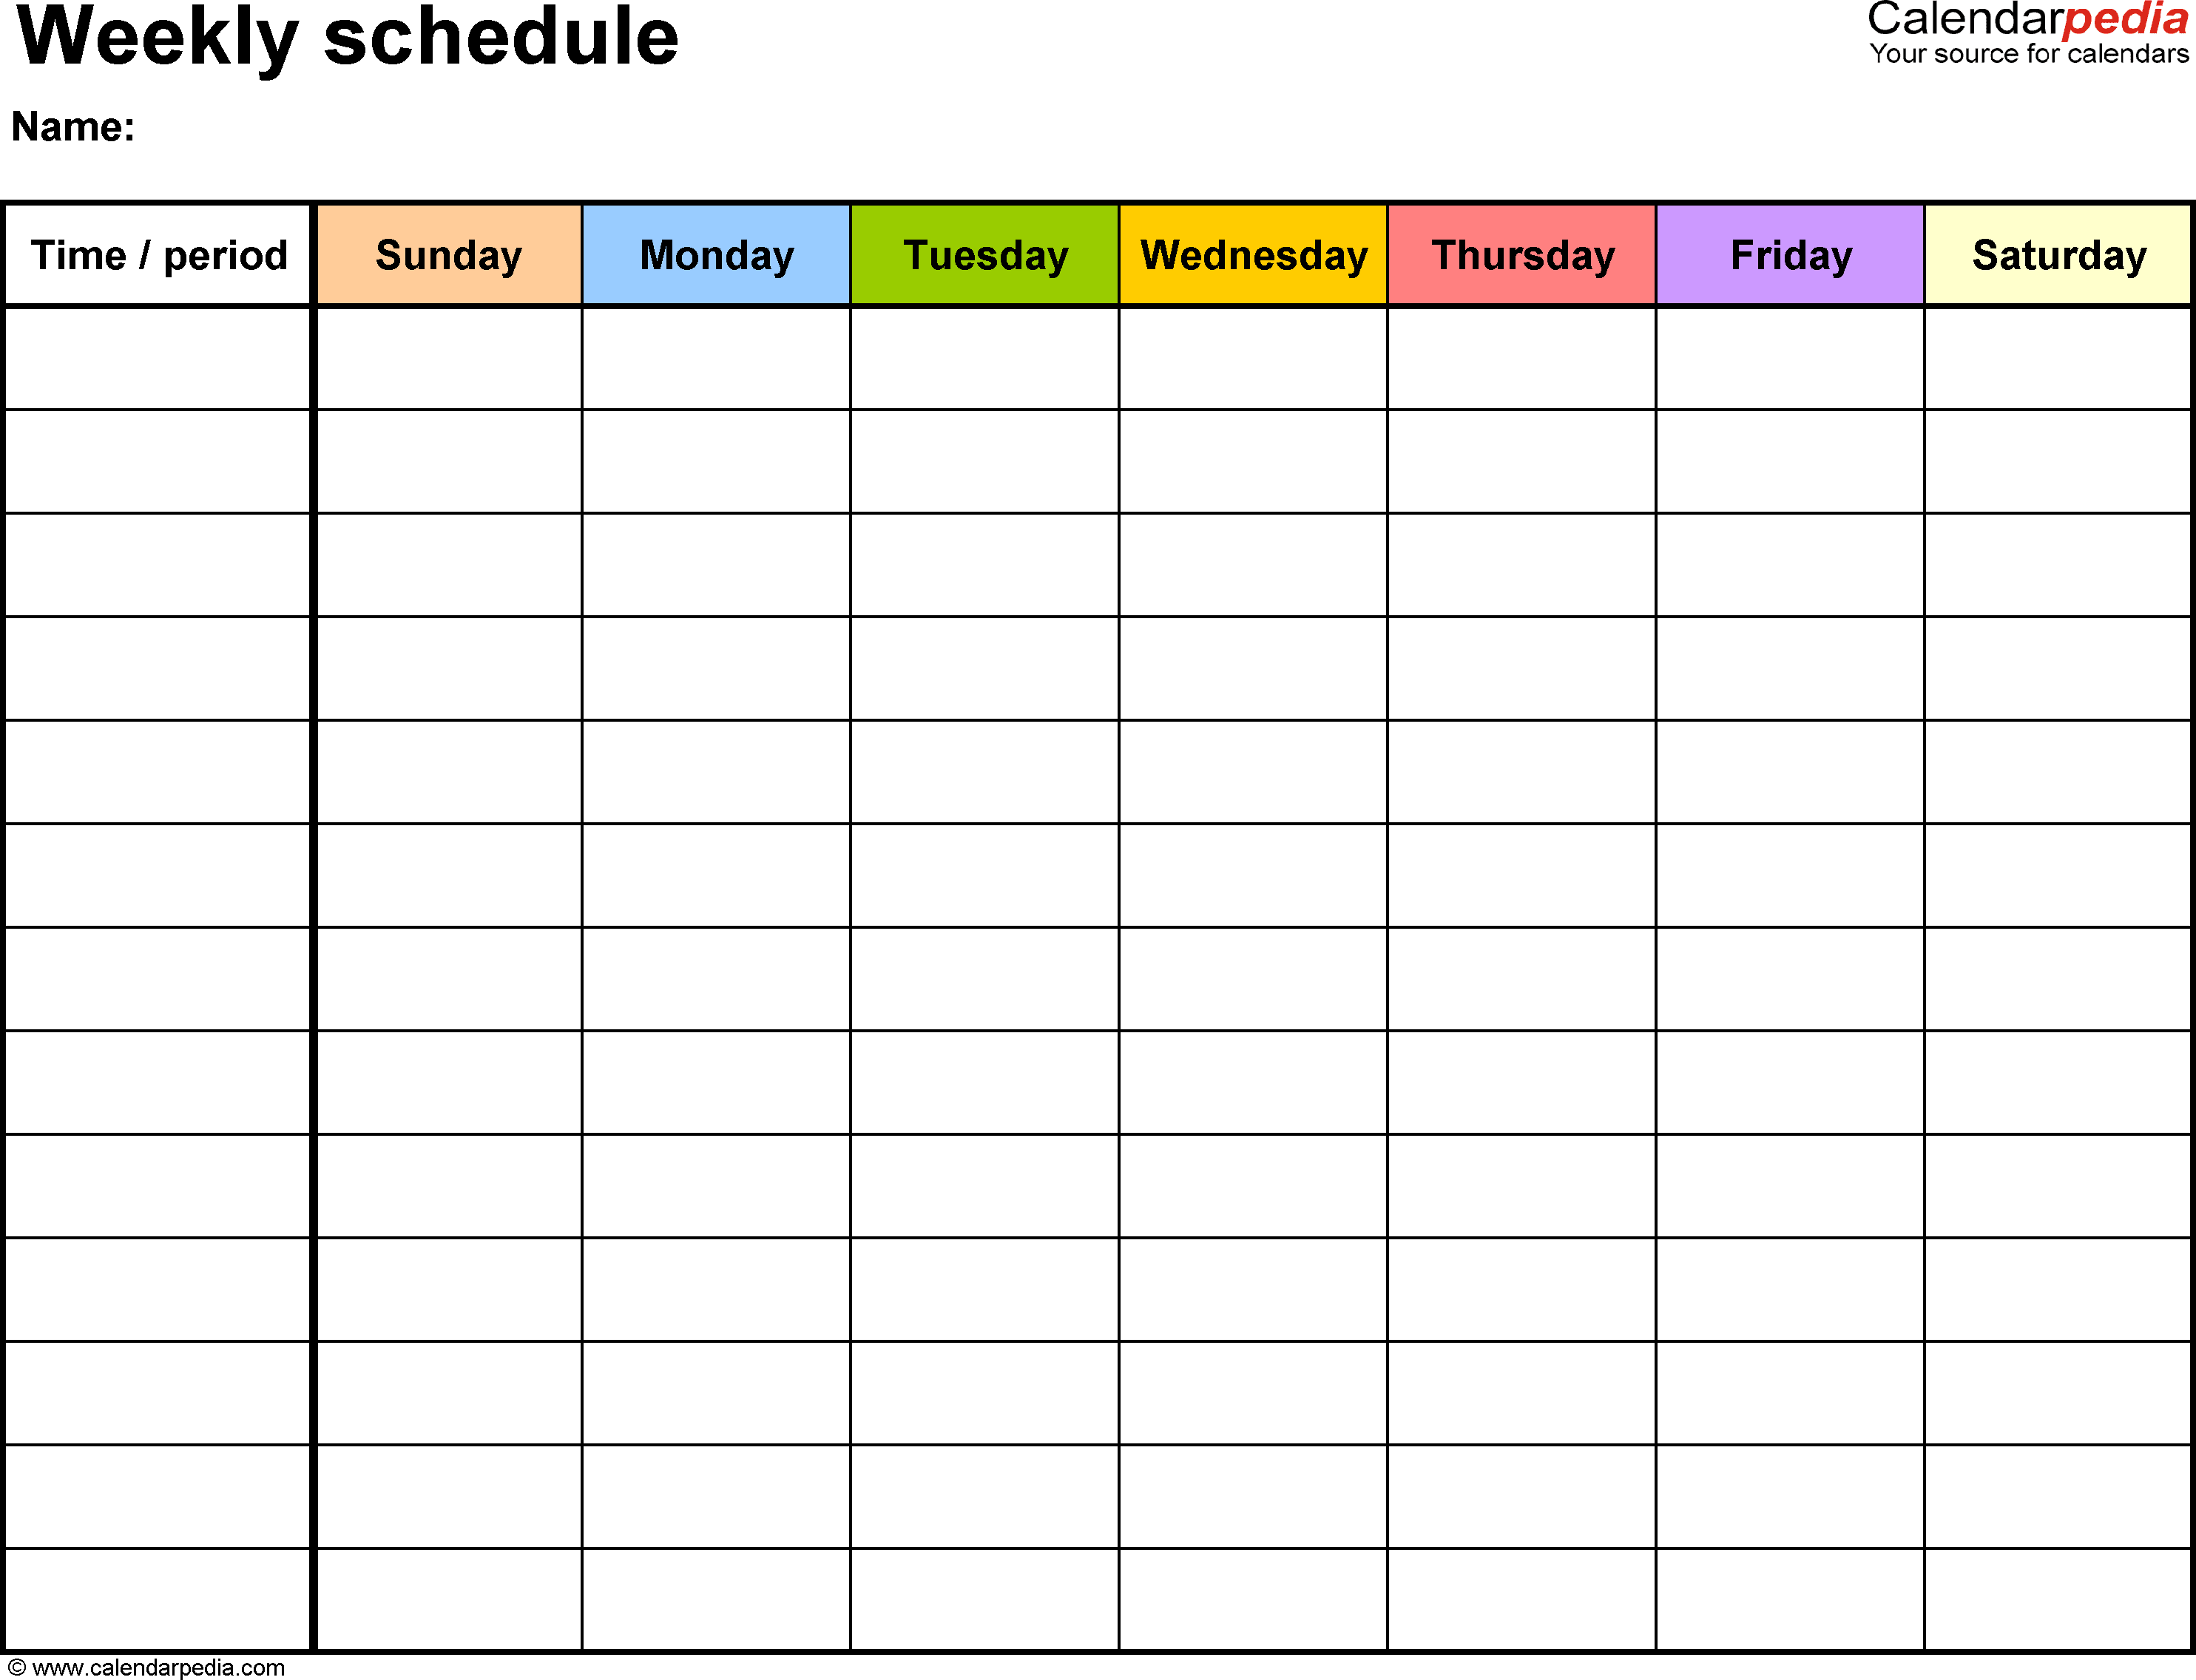 Schedule Template Printable